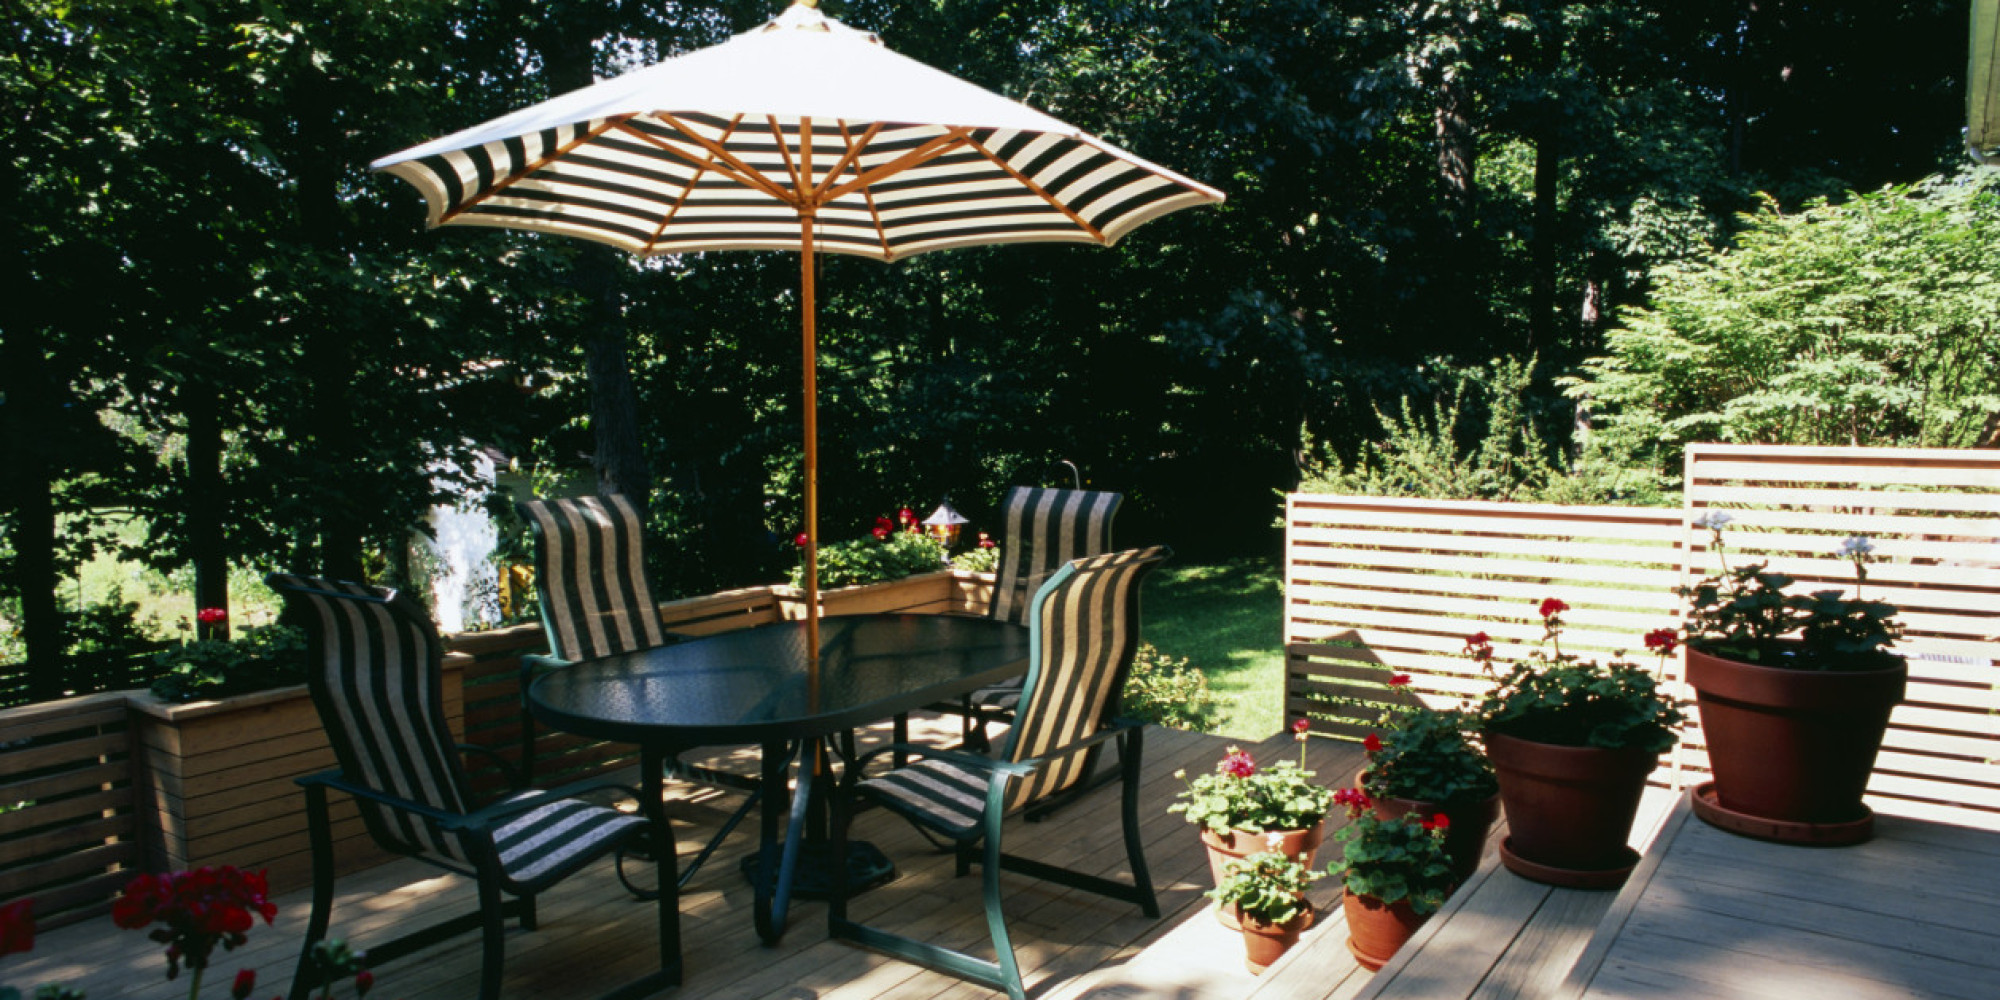 6 Brilliant and Inexpensive Patio Ideas for Small Yards ... on Economical Patio Ideas id=29340